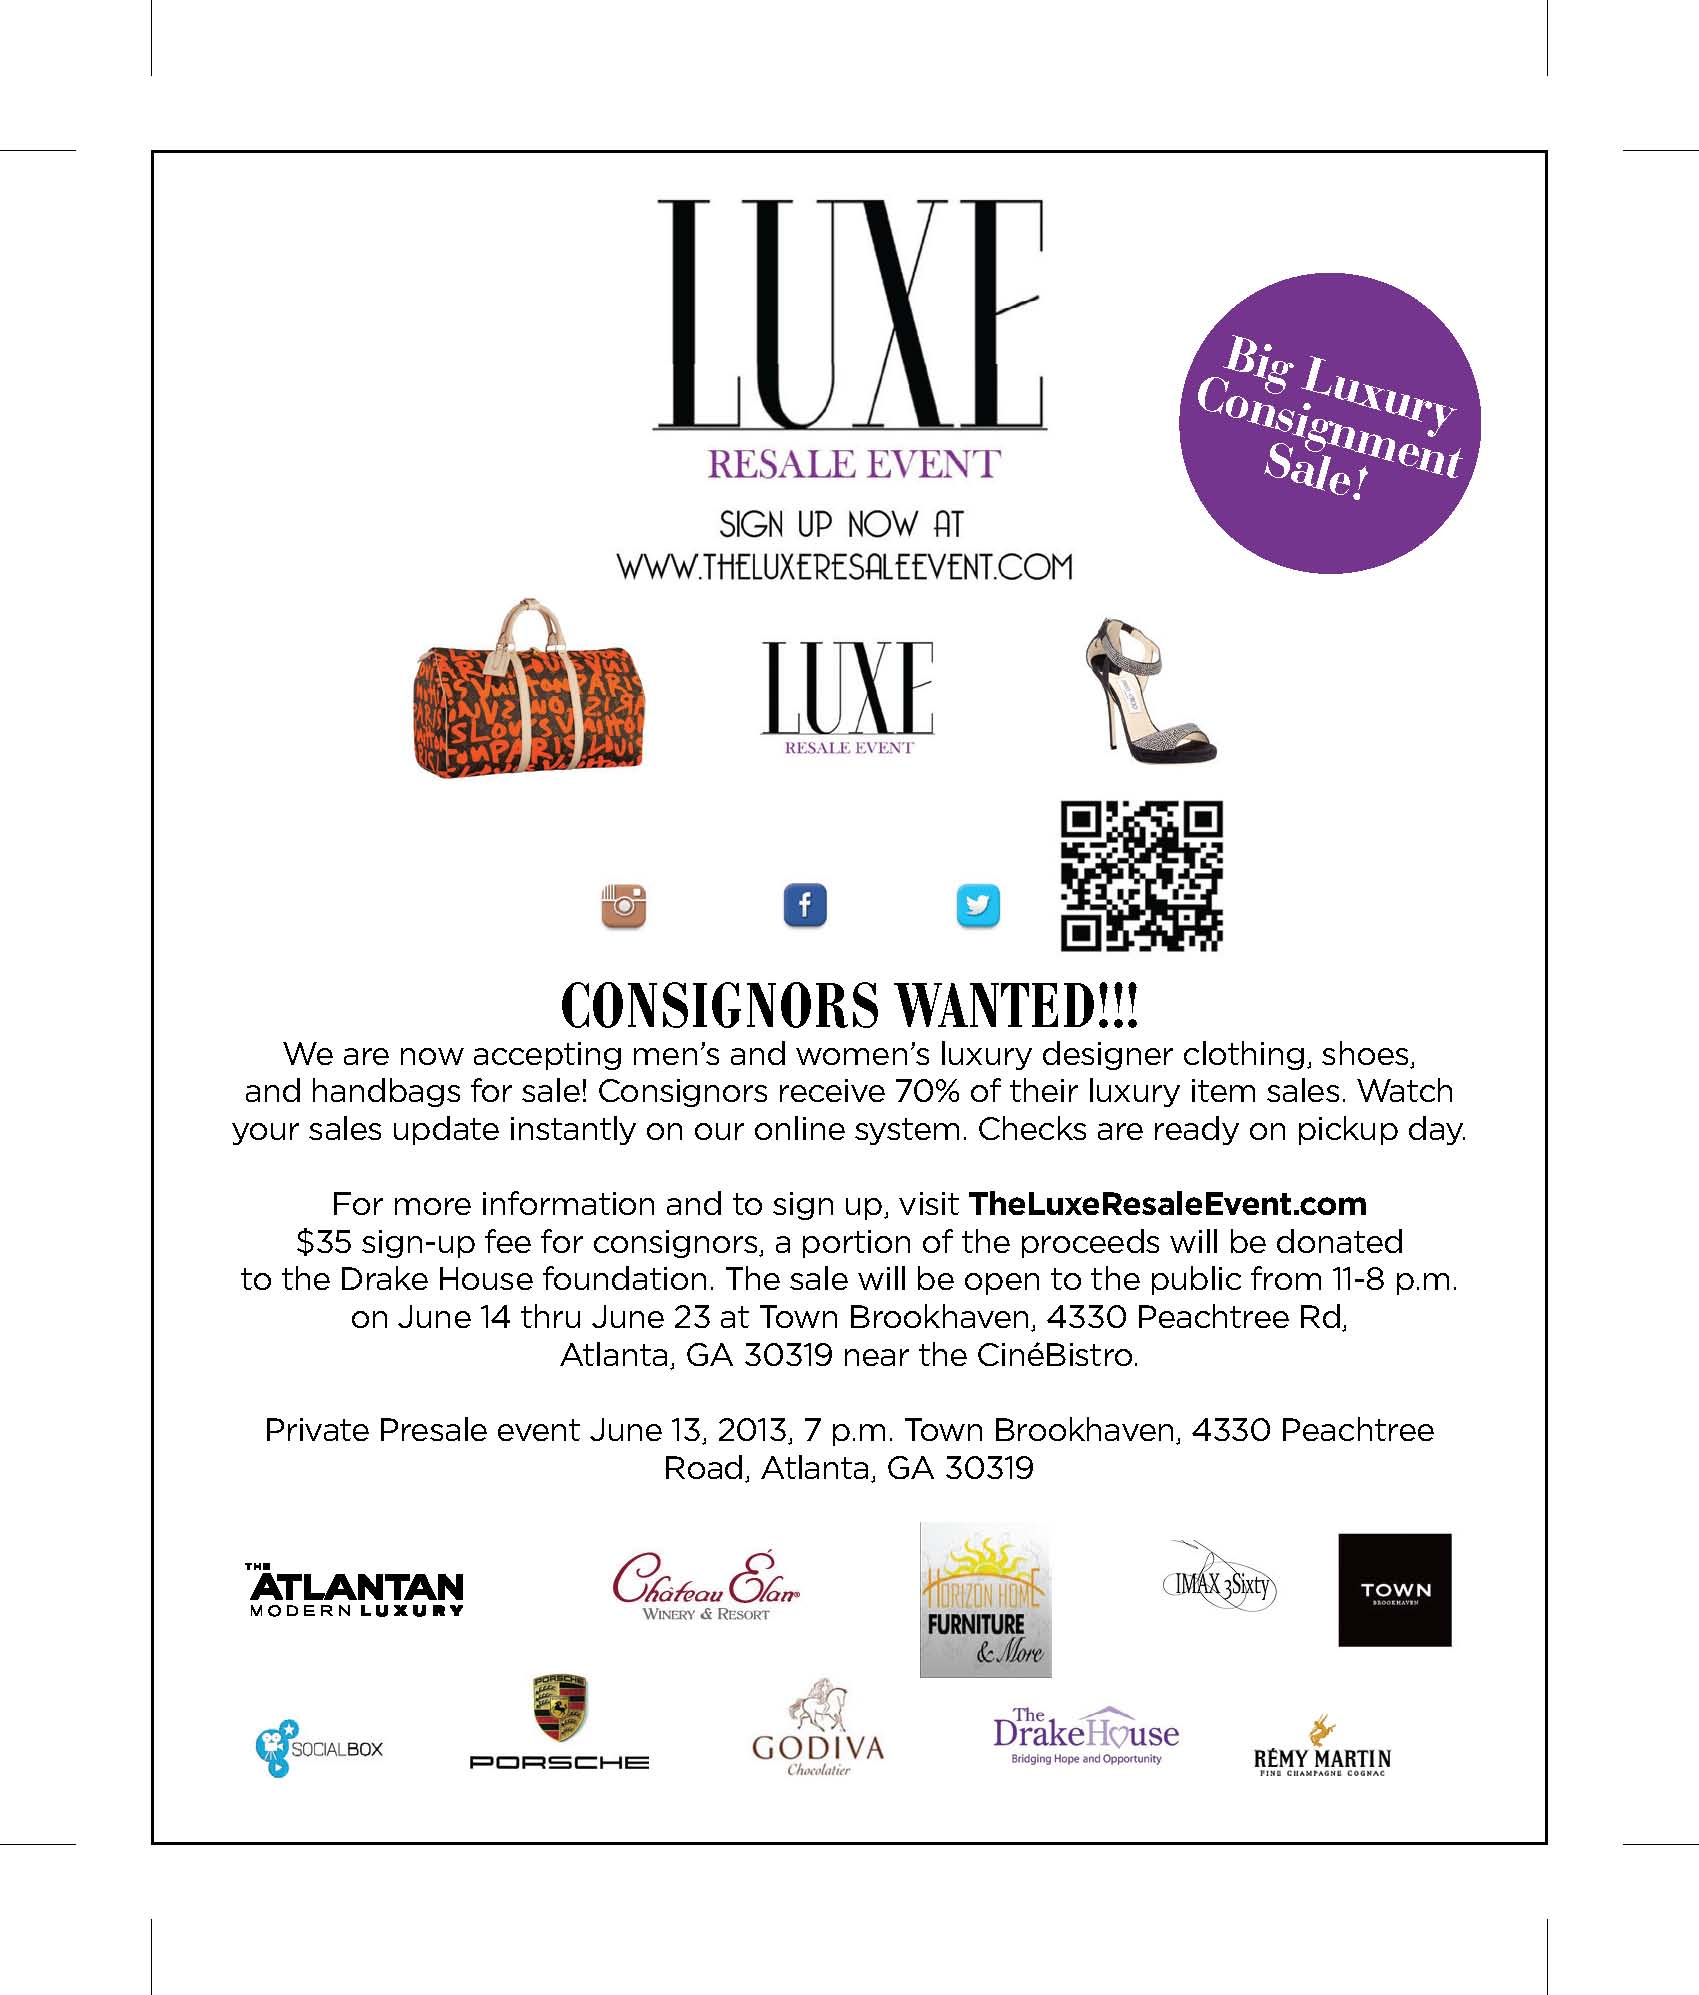 The Luxe Resale Event